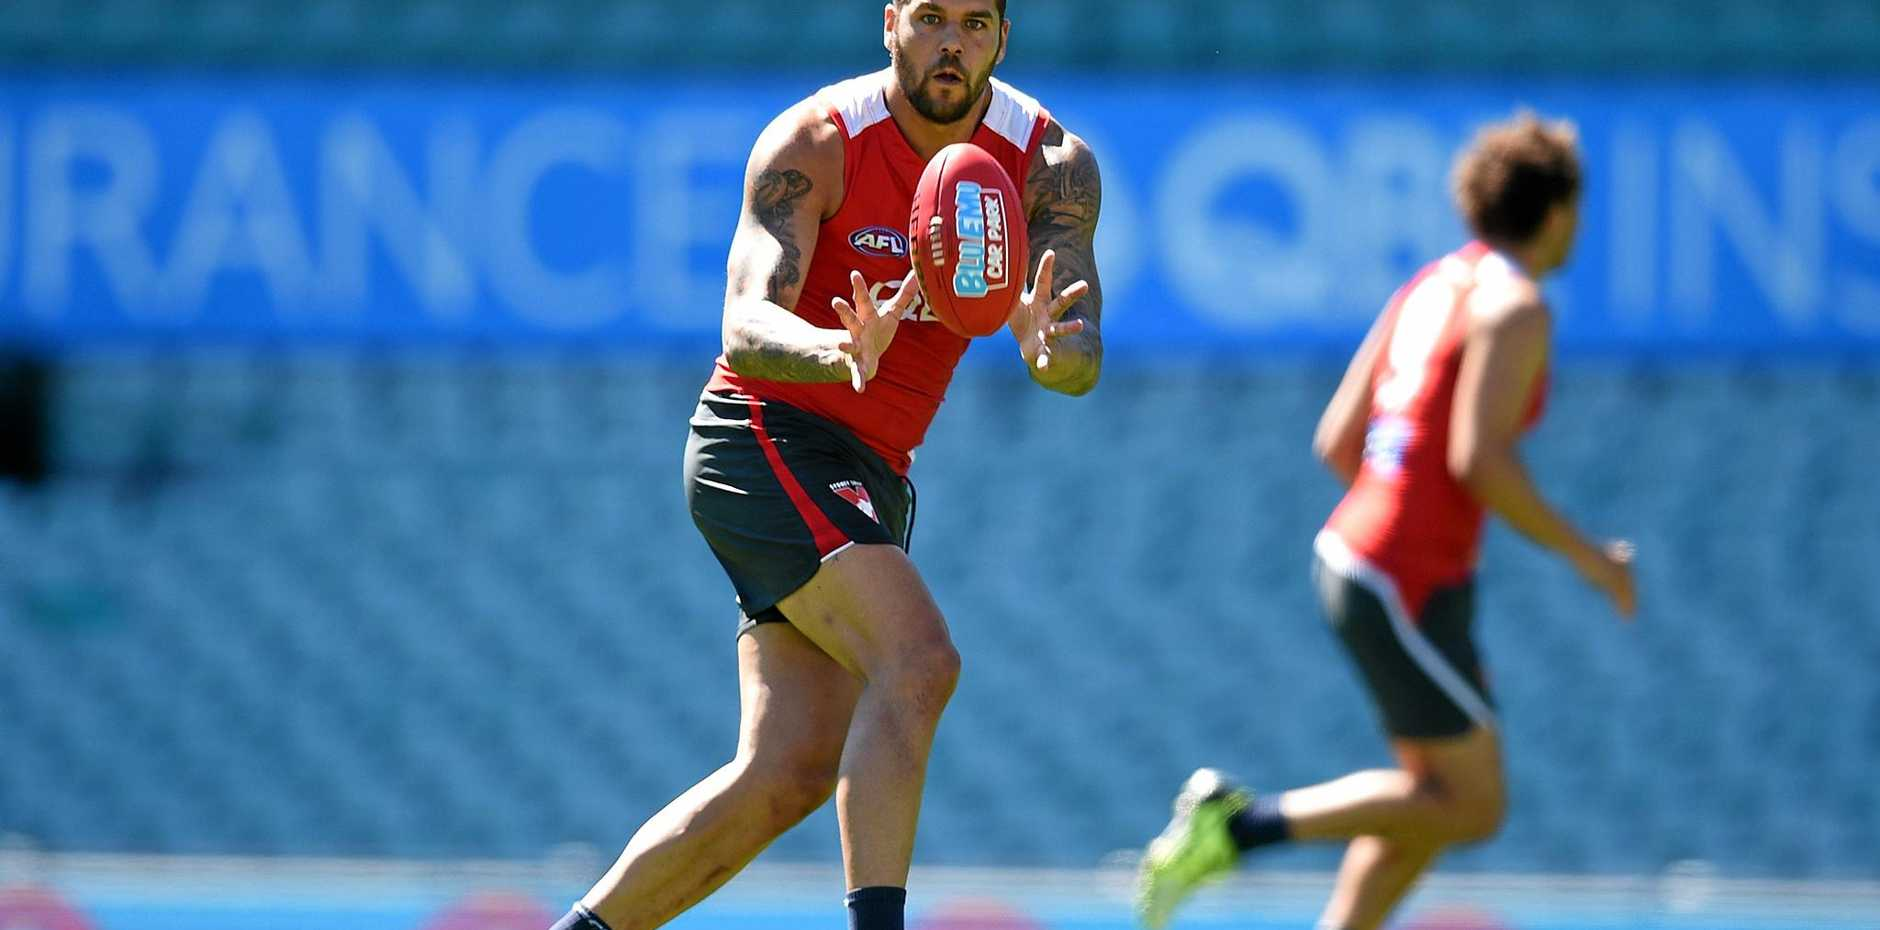 Sydney Swans player Lance Franklin takes part in a open training session and fan day at the Sydney Cricket Ground.